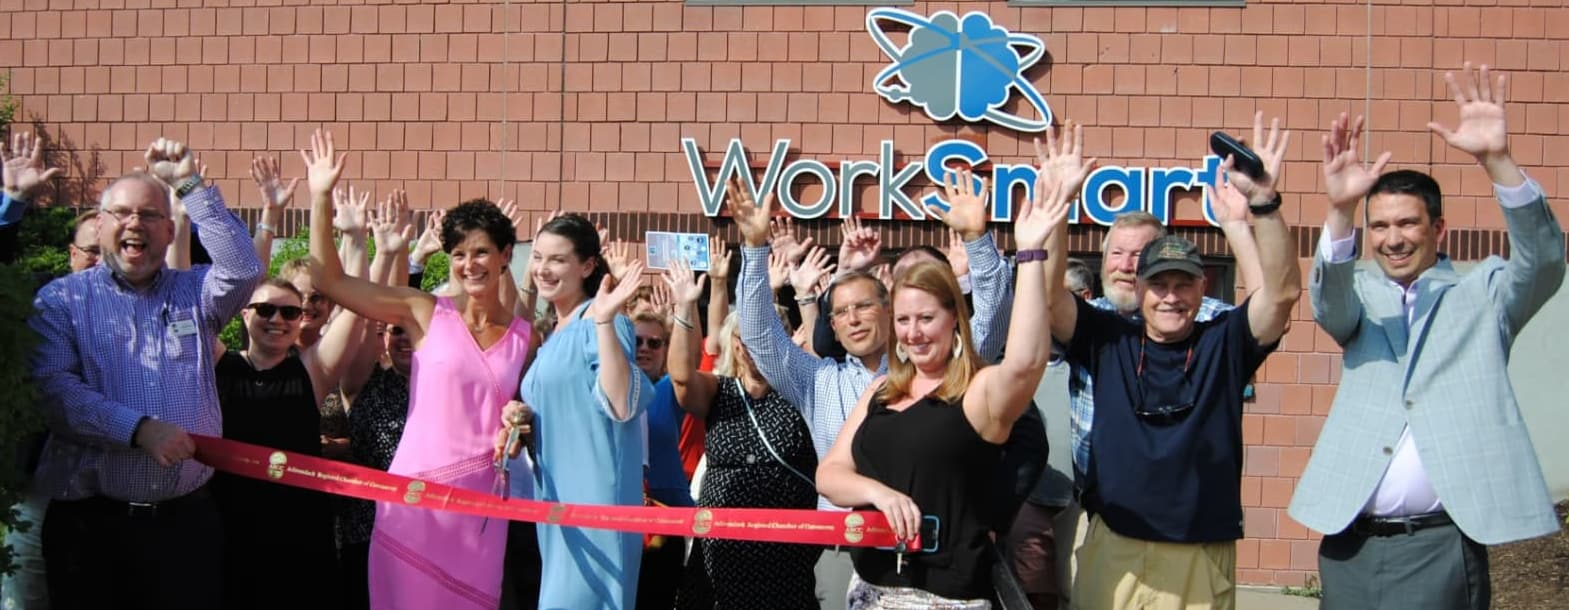 WorkSmart-Ribbon-Cutting-3.jpg